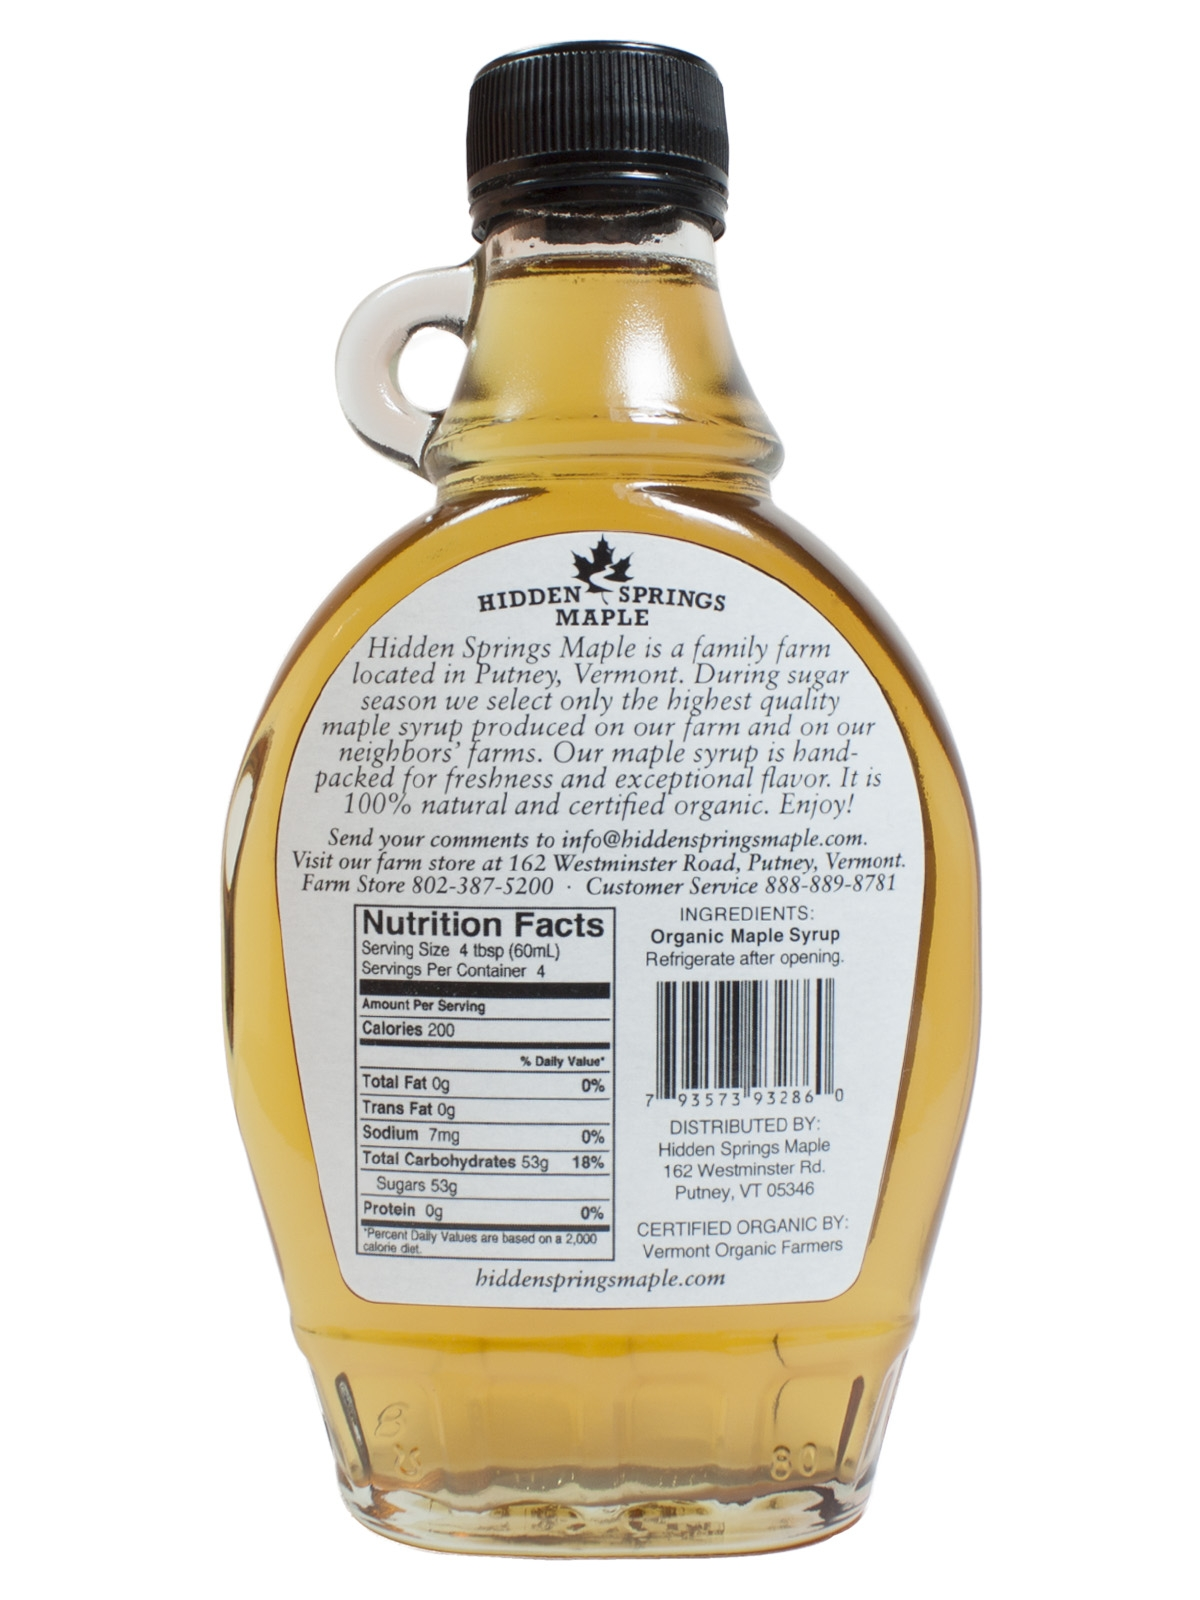 Glass Bottle Organic Maple Syrup Hidden Springs Maple